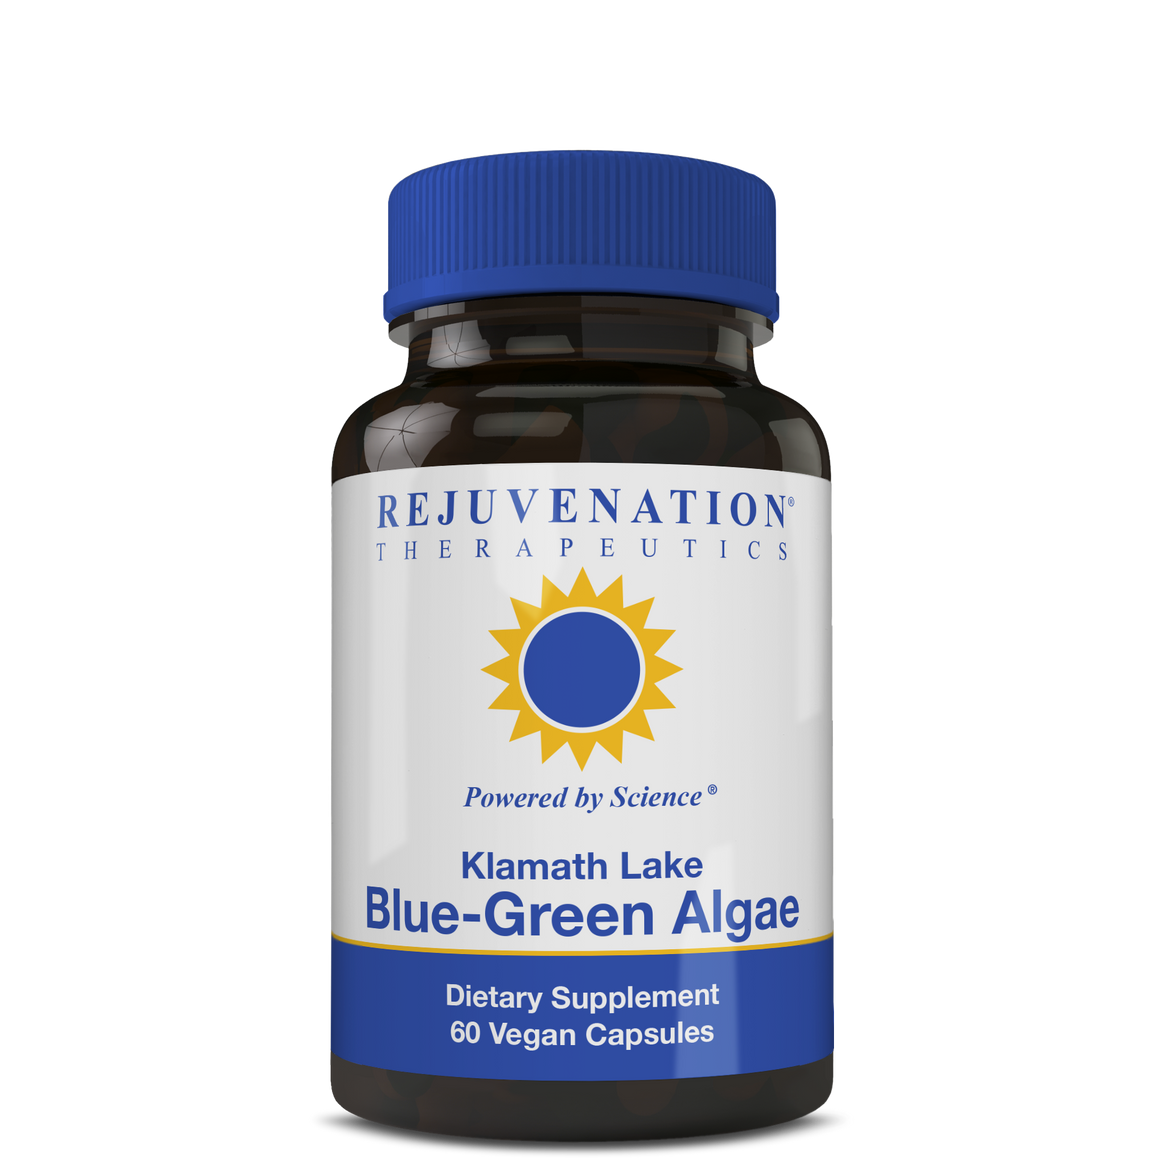 Klamath Lake Blue-Green Algae (500 mg, 60 Vegan Capsules) - Brain Health & Stress Management, Non-GMO, Gluten-Free